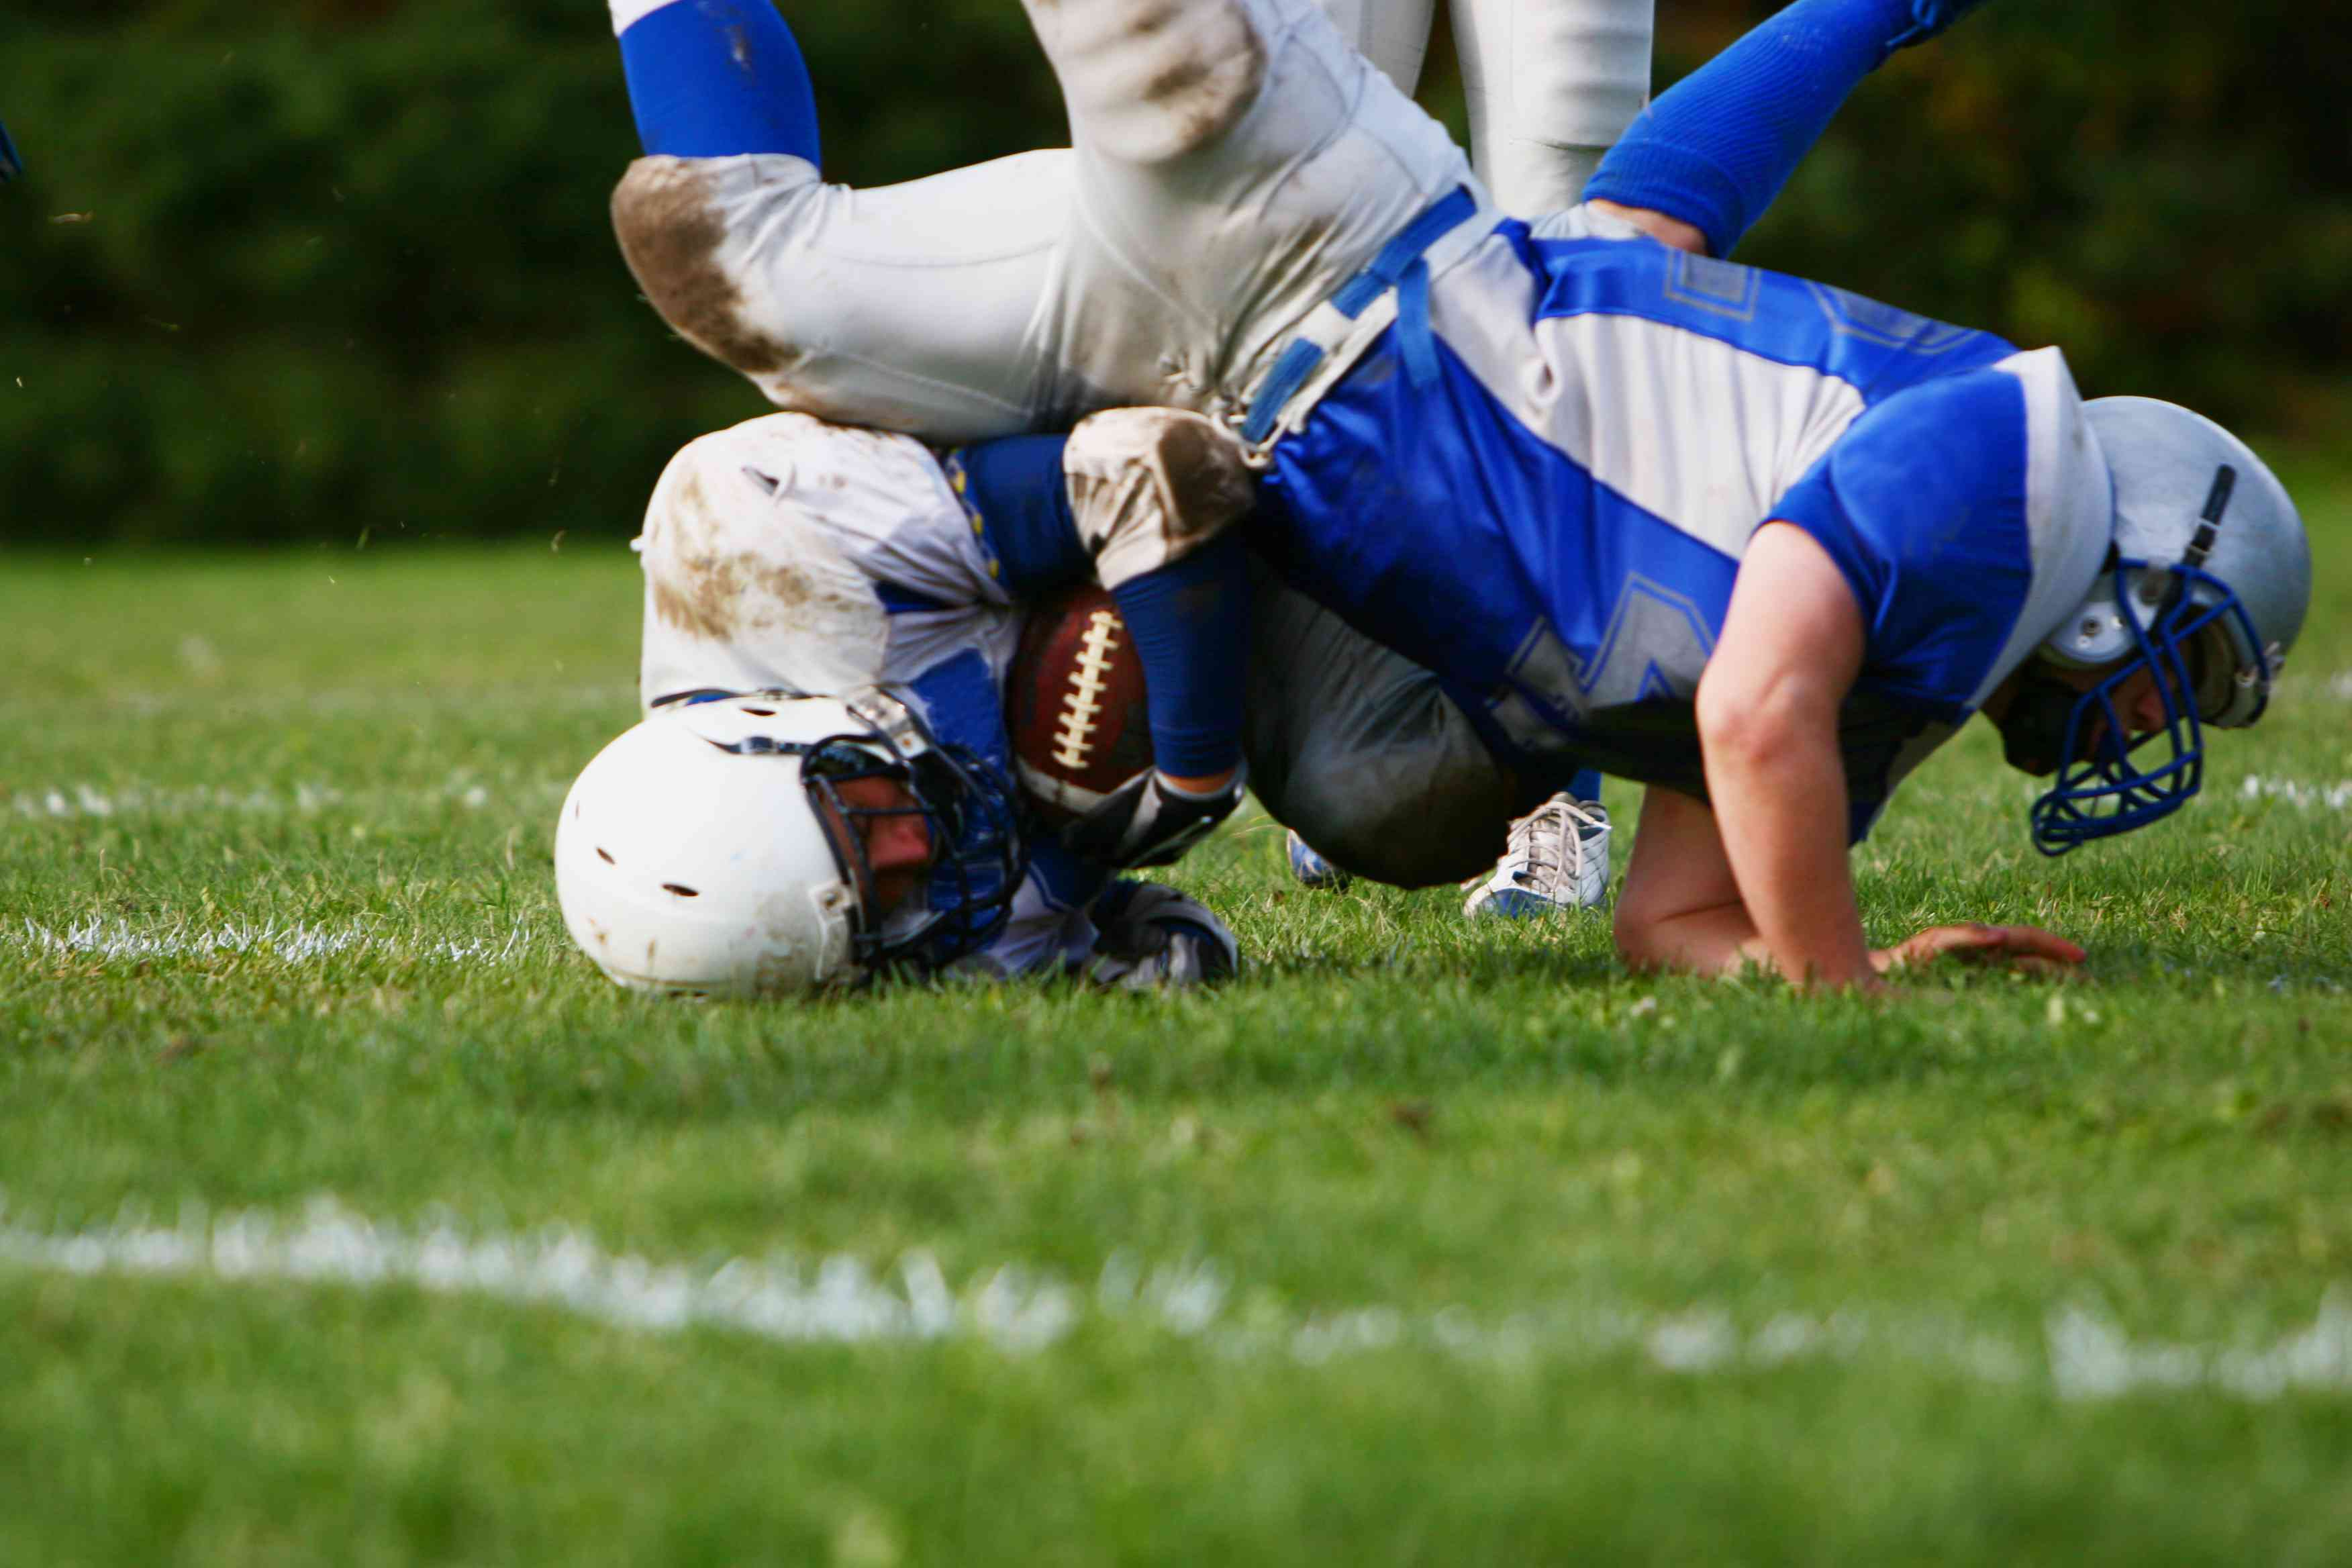 American football players colliding on the field